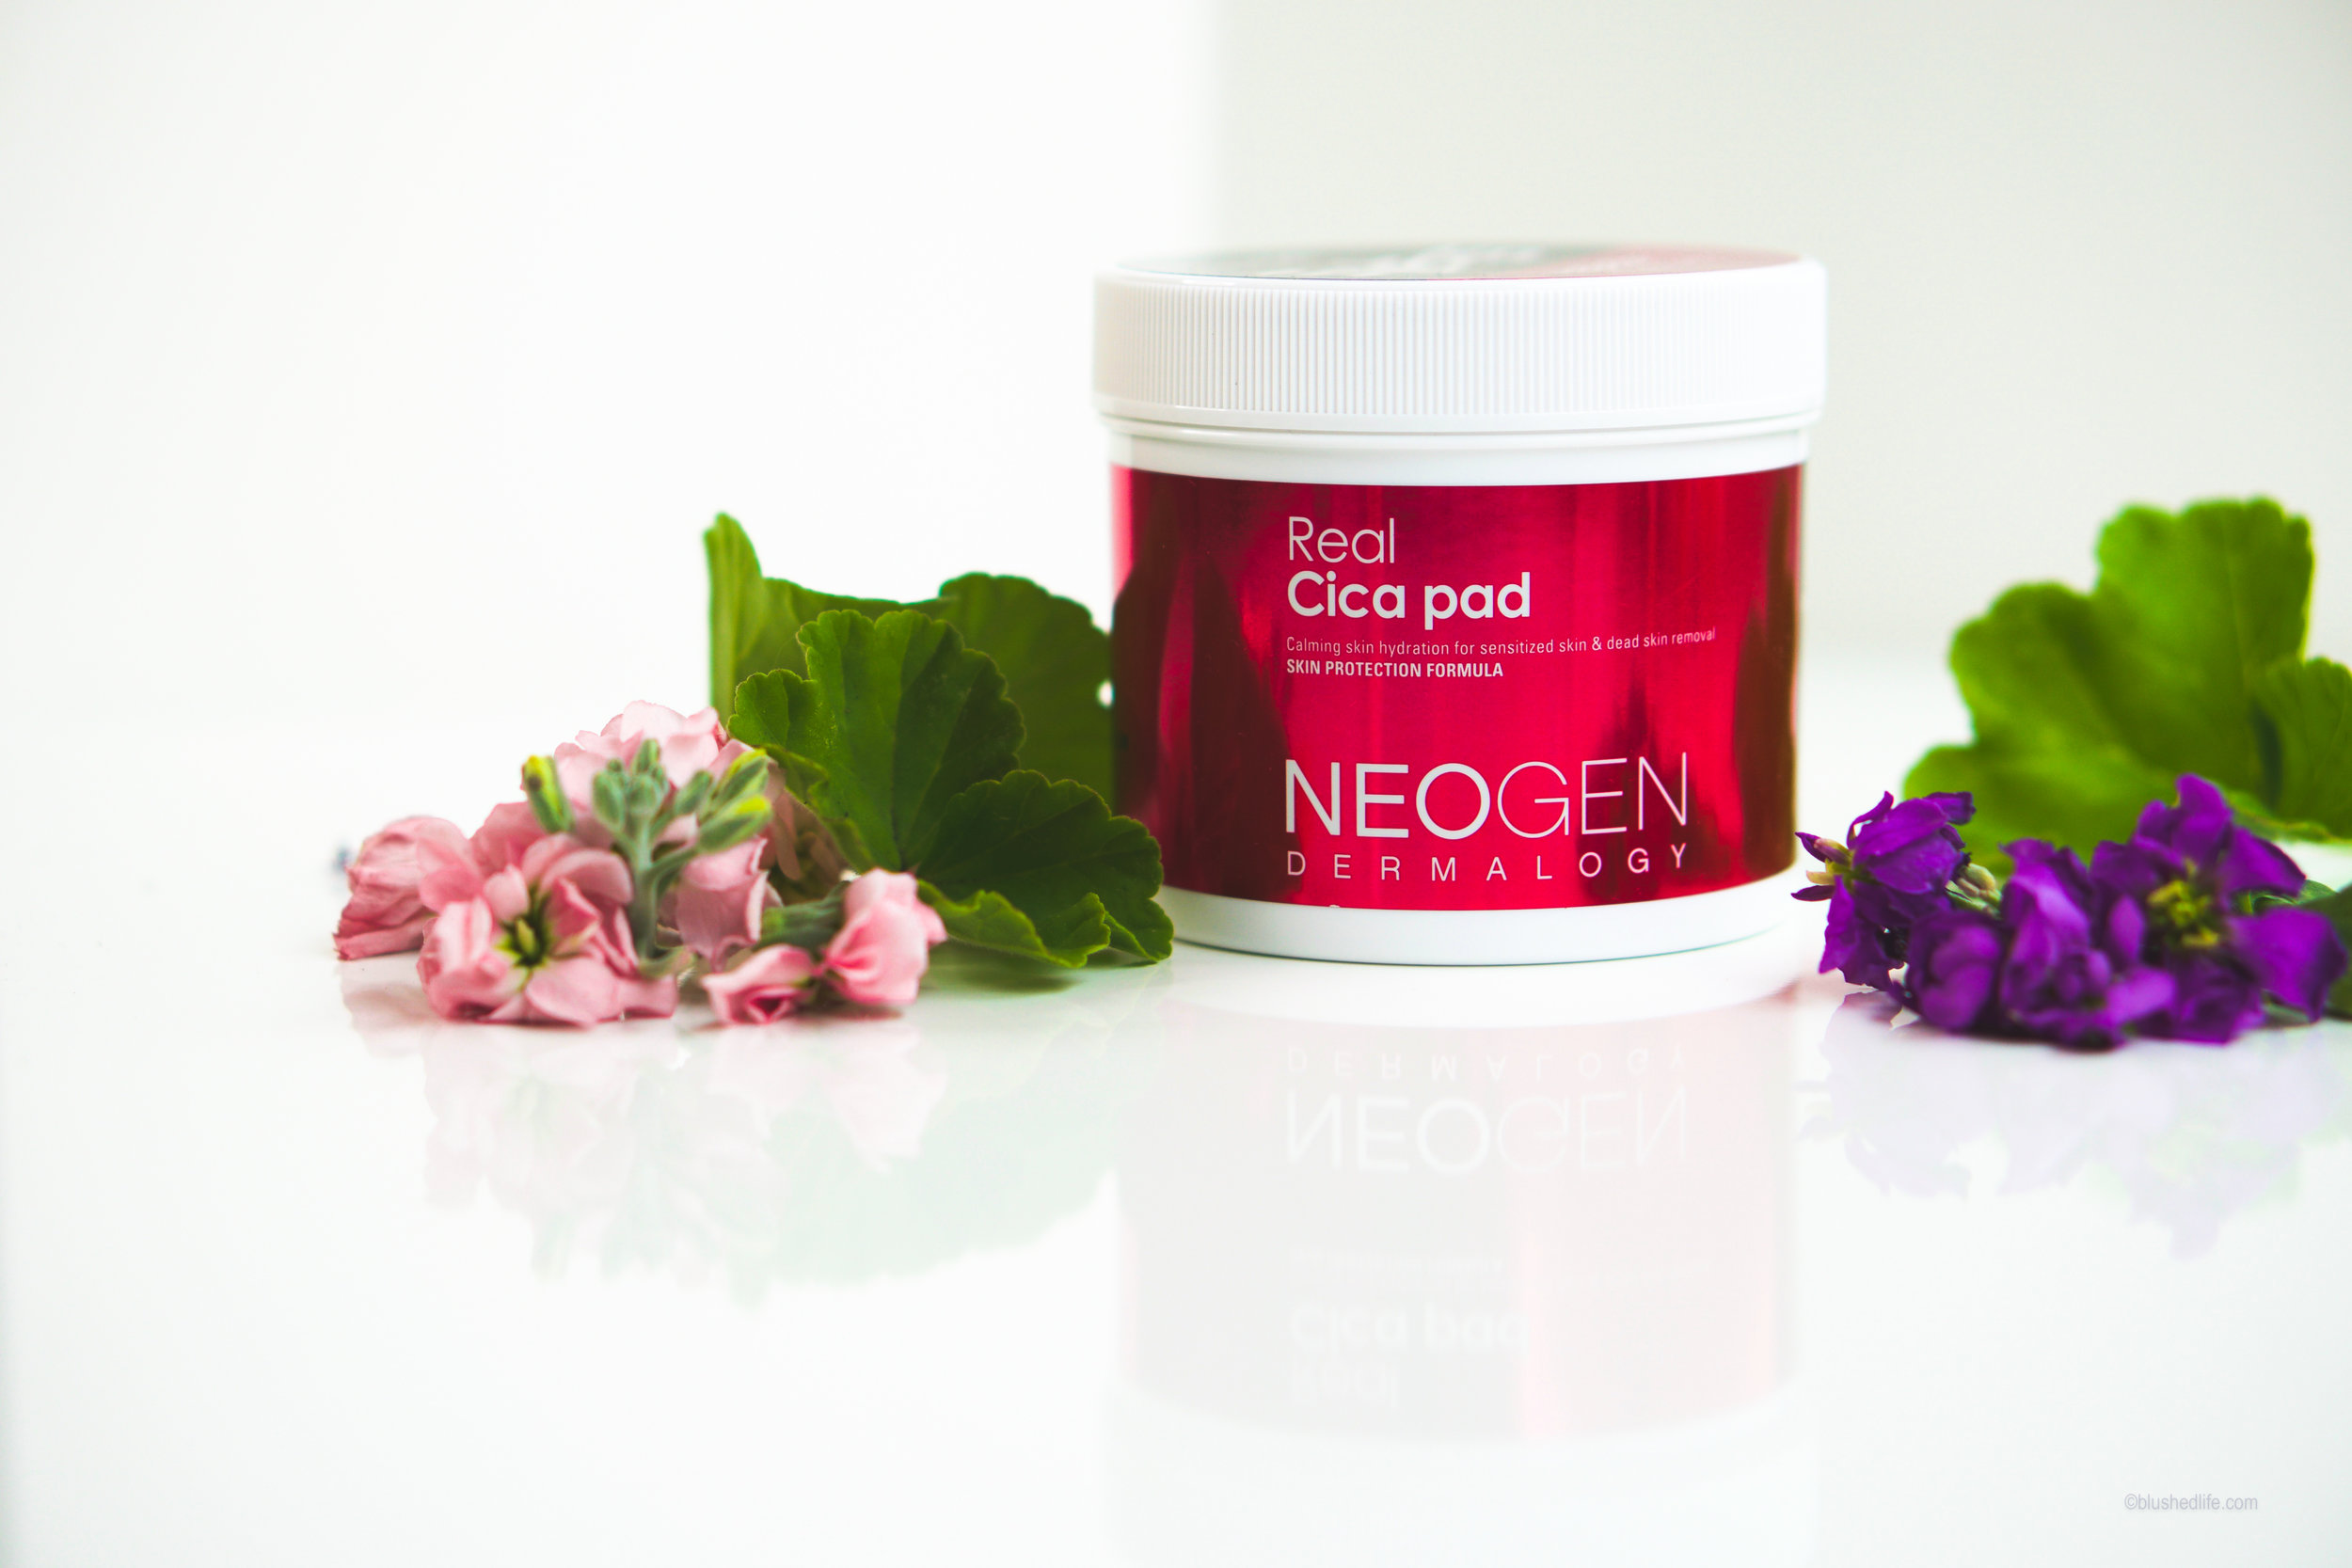 Neogen Real Cica Pad Review Comparison-07435.jpg